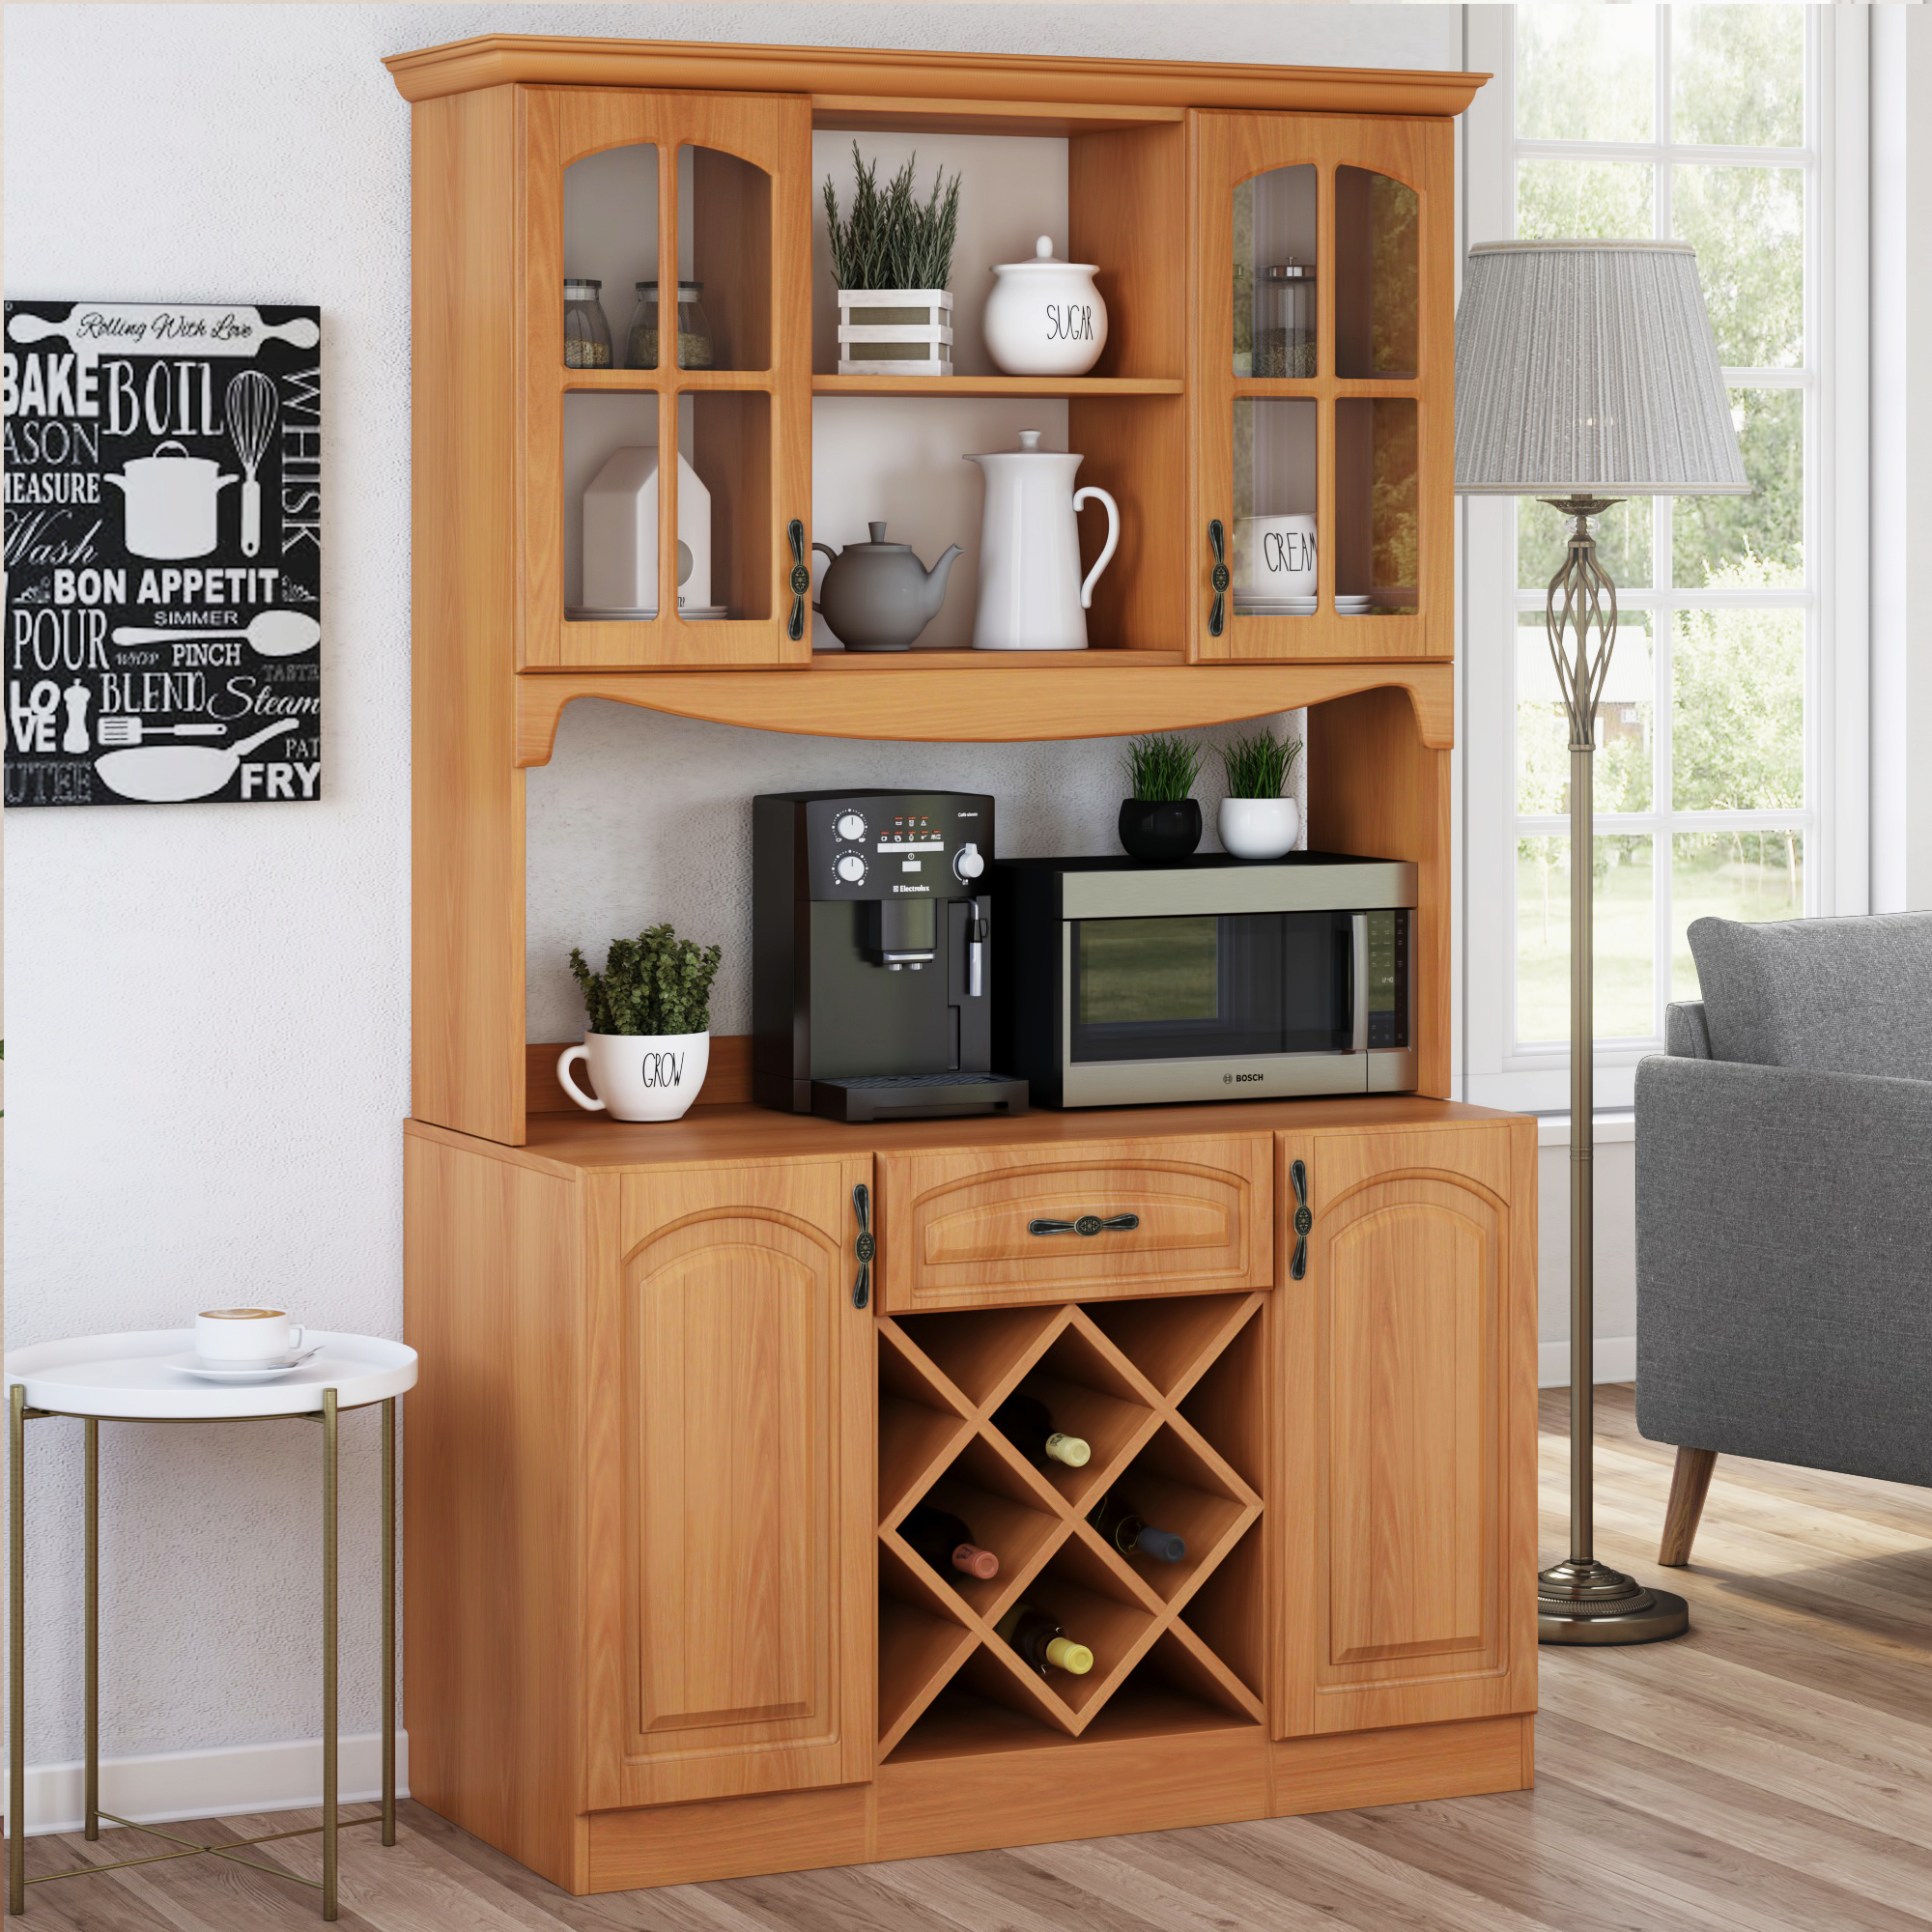 Classic wooden kitchen hutch